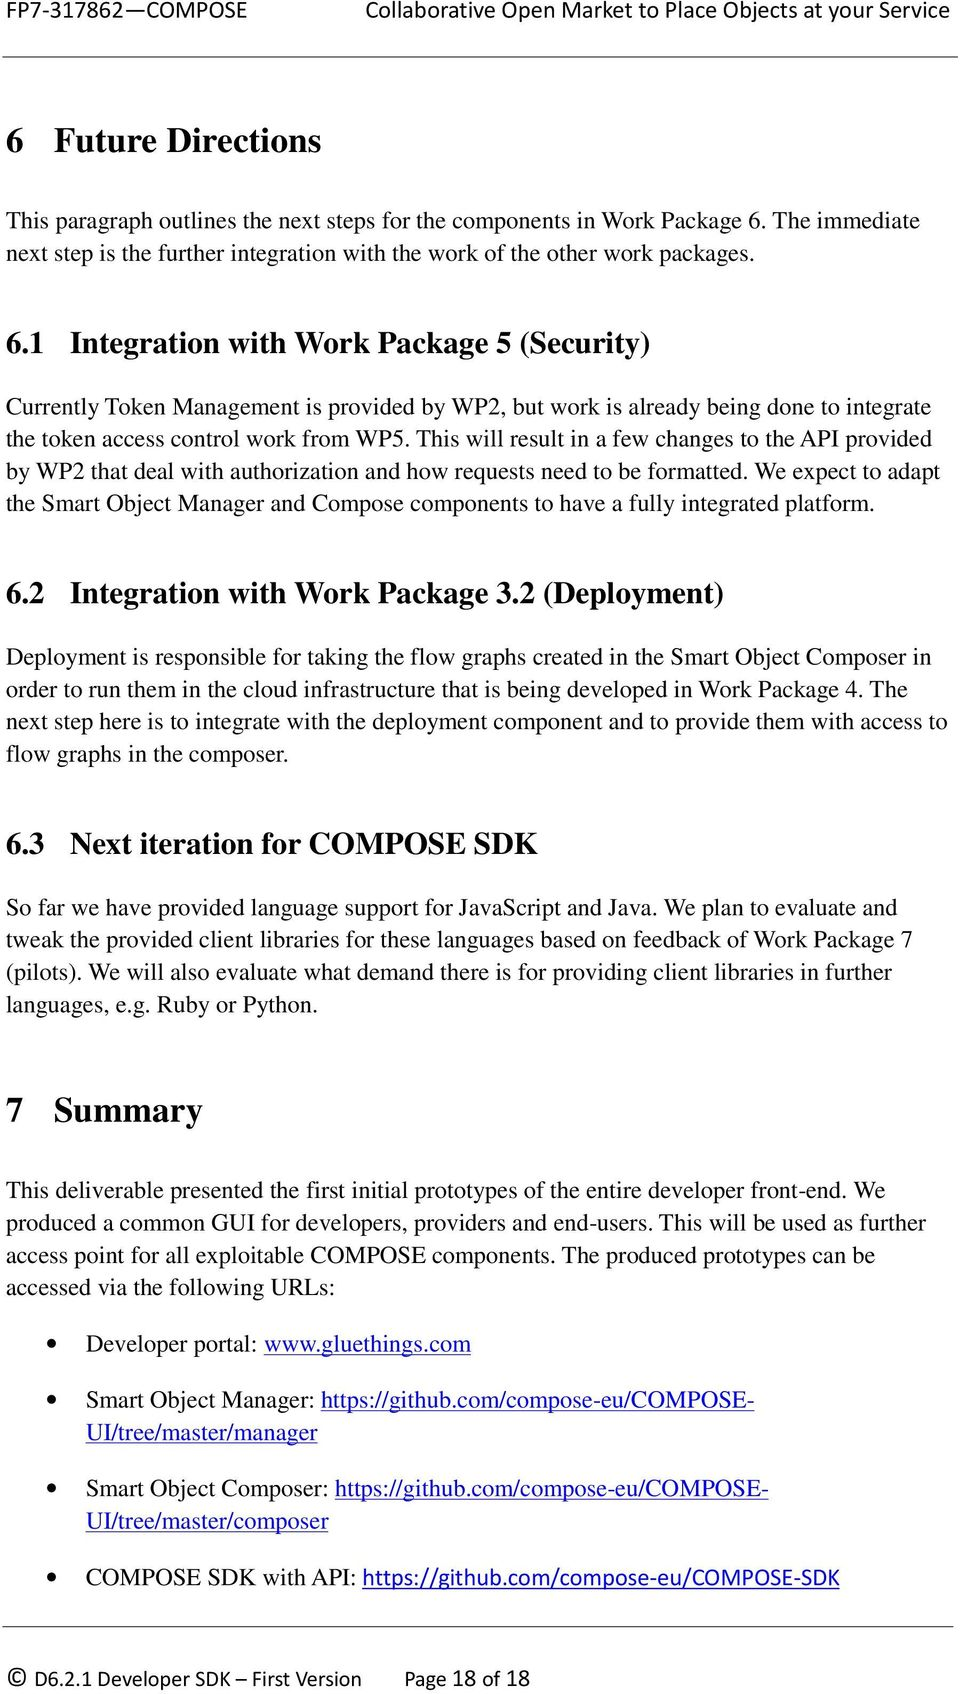 1 Integration with Work Package 5 (Security) Currently Token Management is provided by WP2, but work is already being done to integrate the token access control work from WP5.